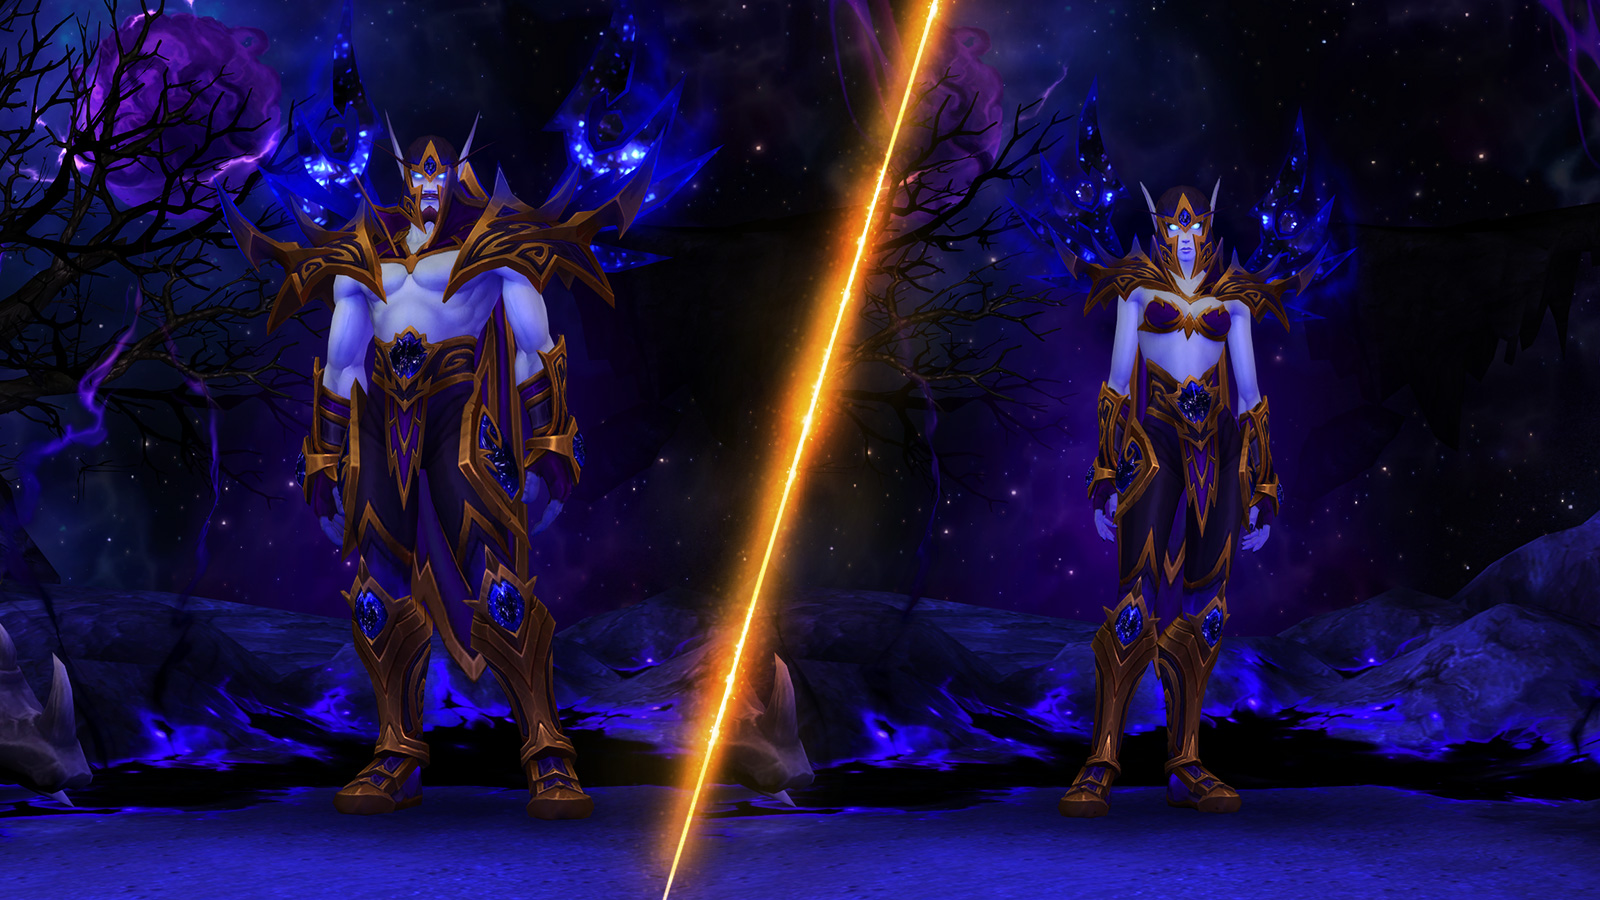 Heritage Armor Wowpedia Your Wiki Guide To The World Of Warcraft Nouvelle armure d'archer elfe de la nuit dans battle for azeroth et these pictures of this page are about:female void elf heritage armor. heritage armor wowpedia your wiki